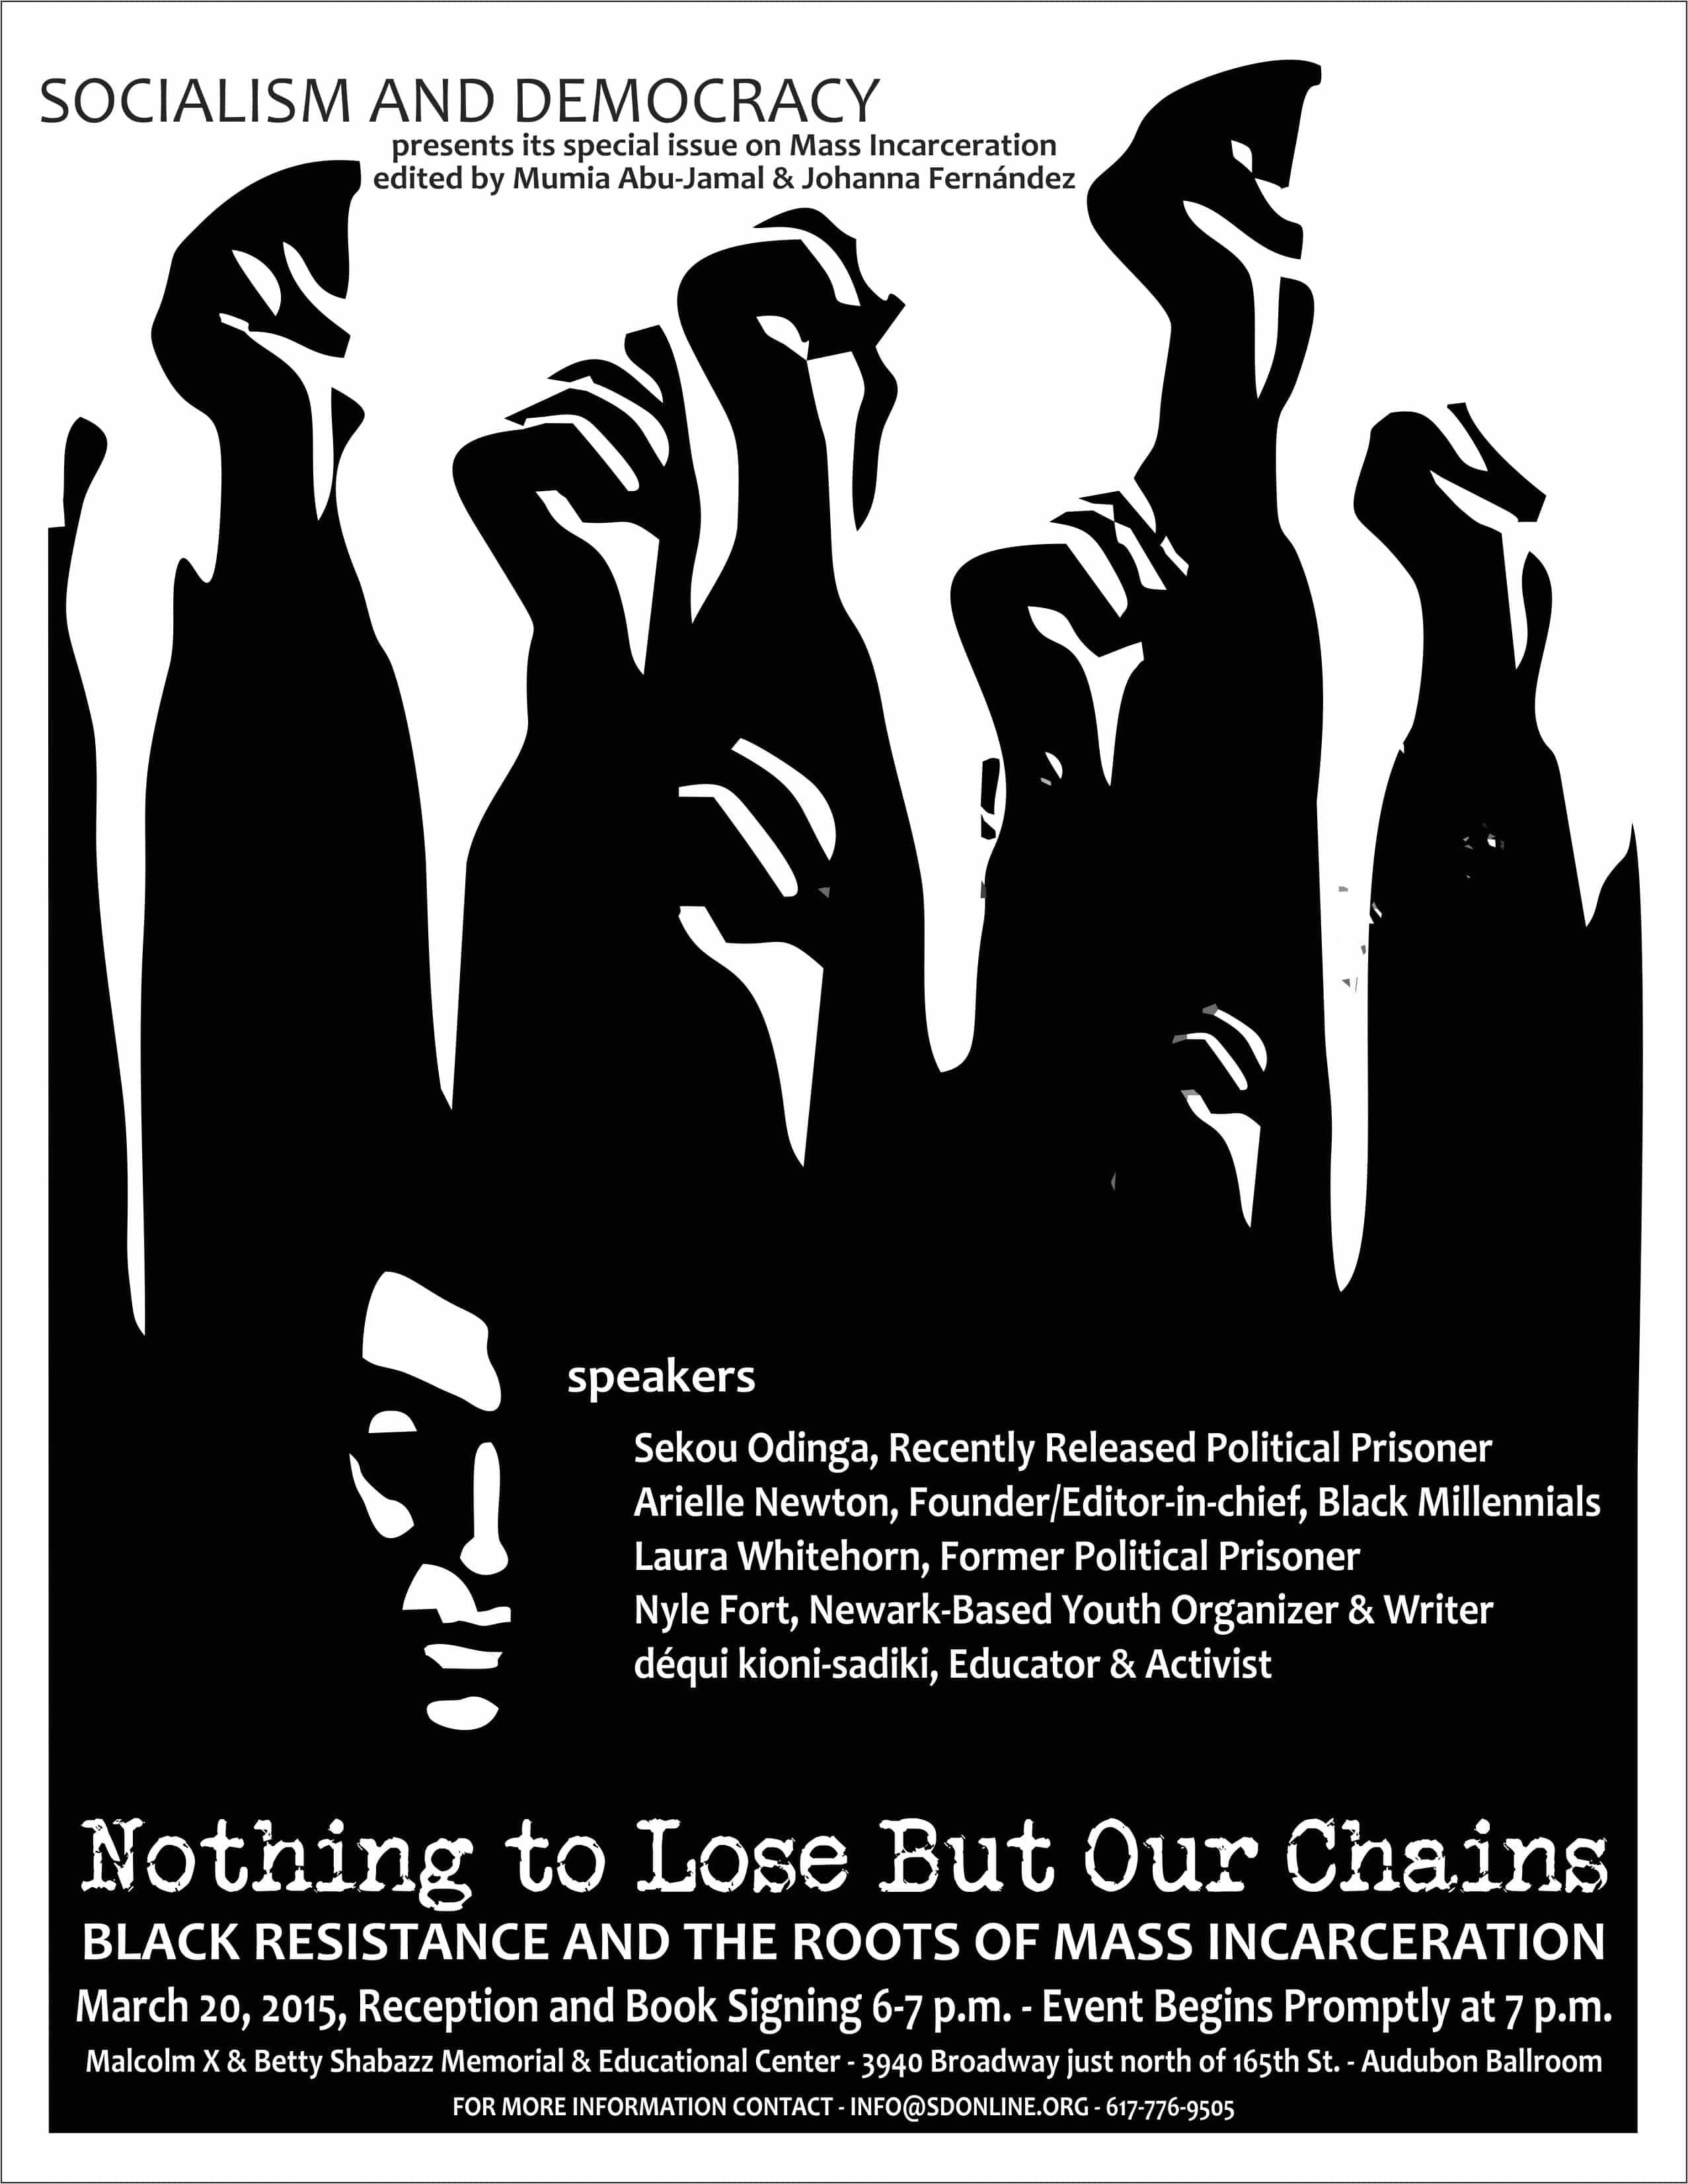 Nothing to Lose But Our Chains: Black Resistance and the Roots of Mass Incarceration